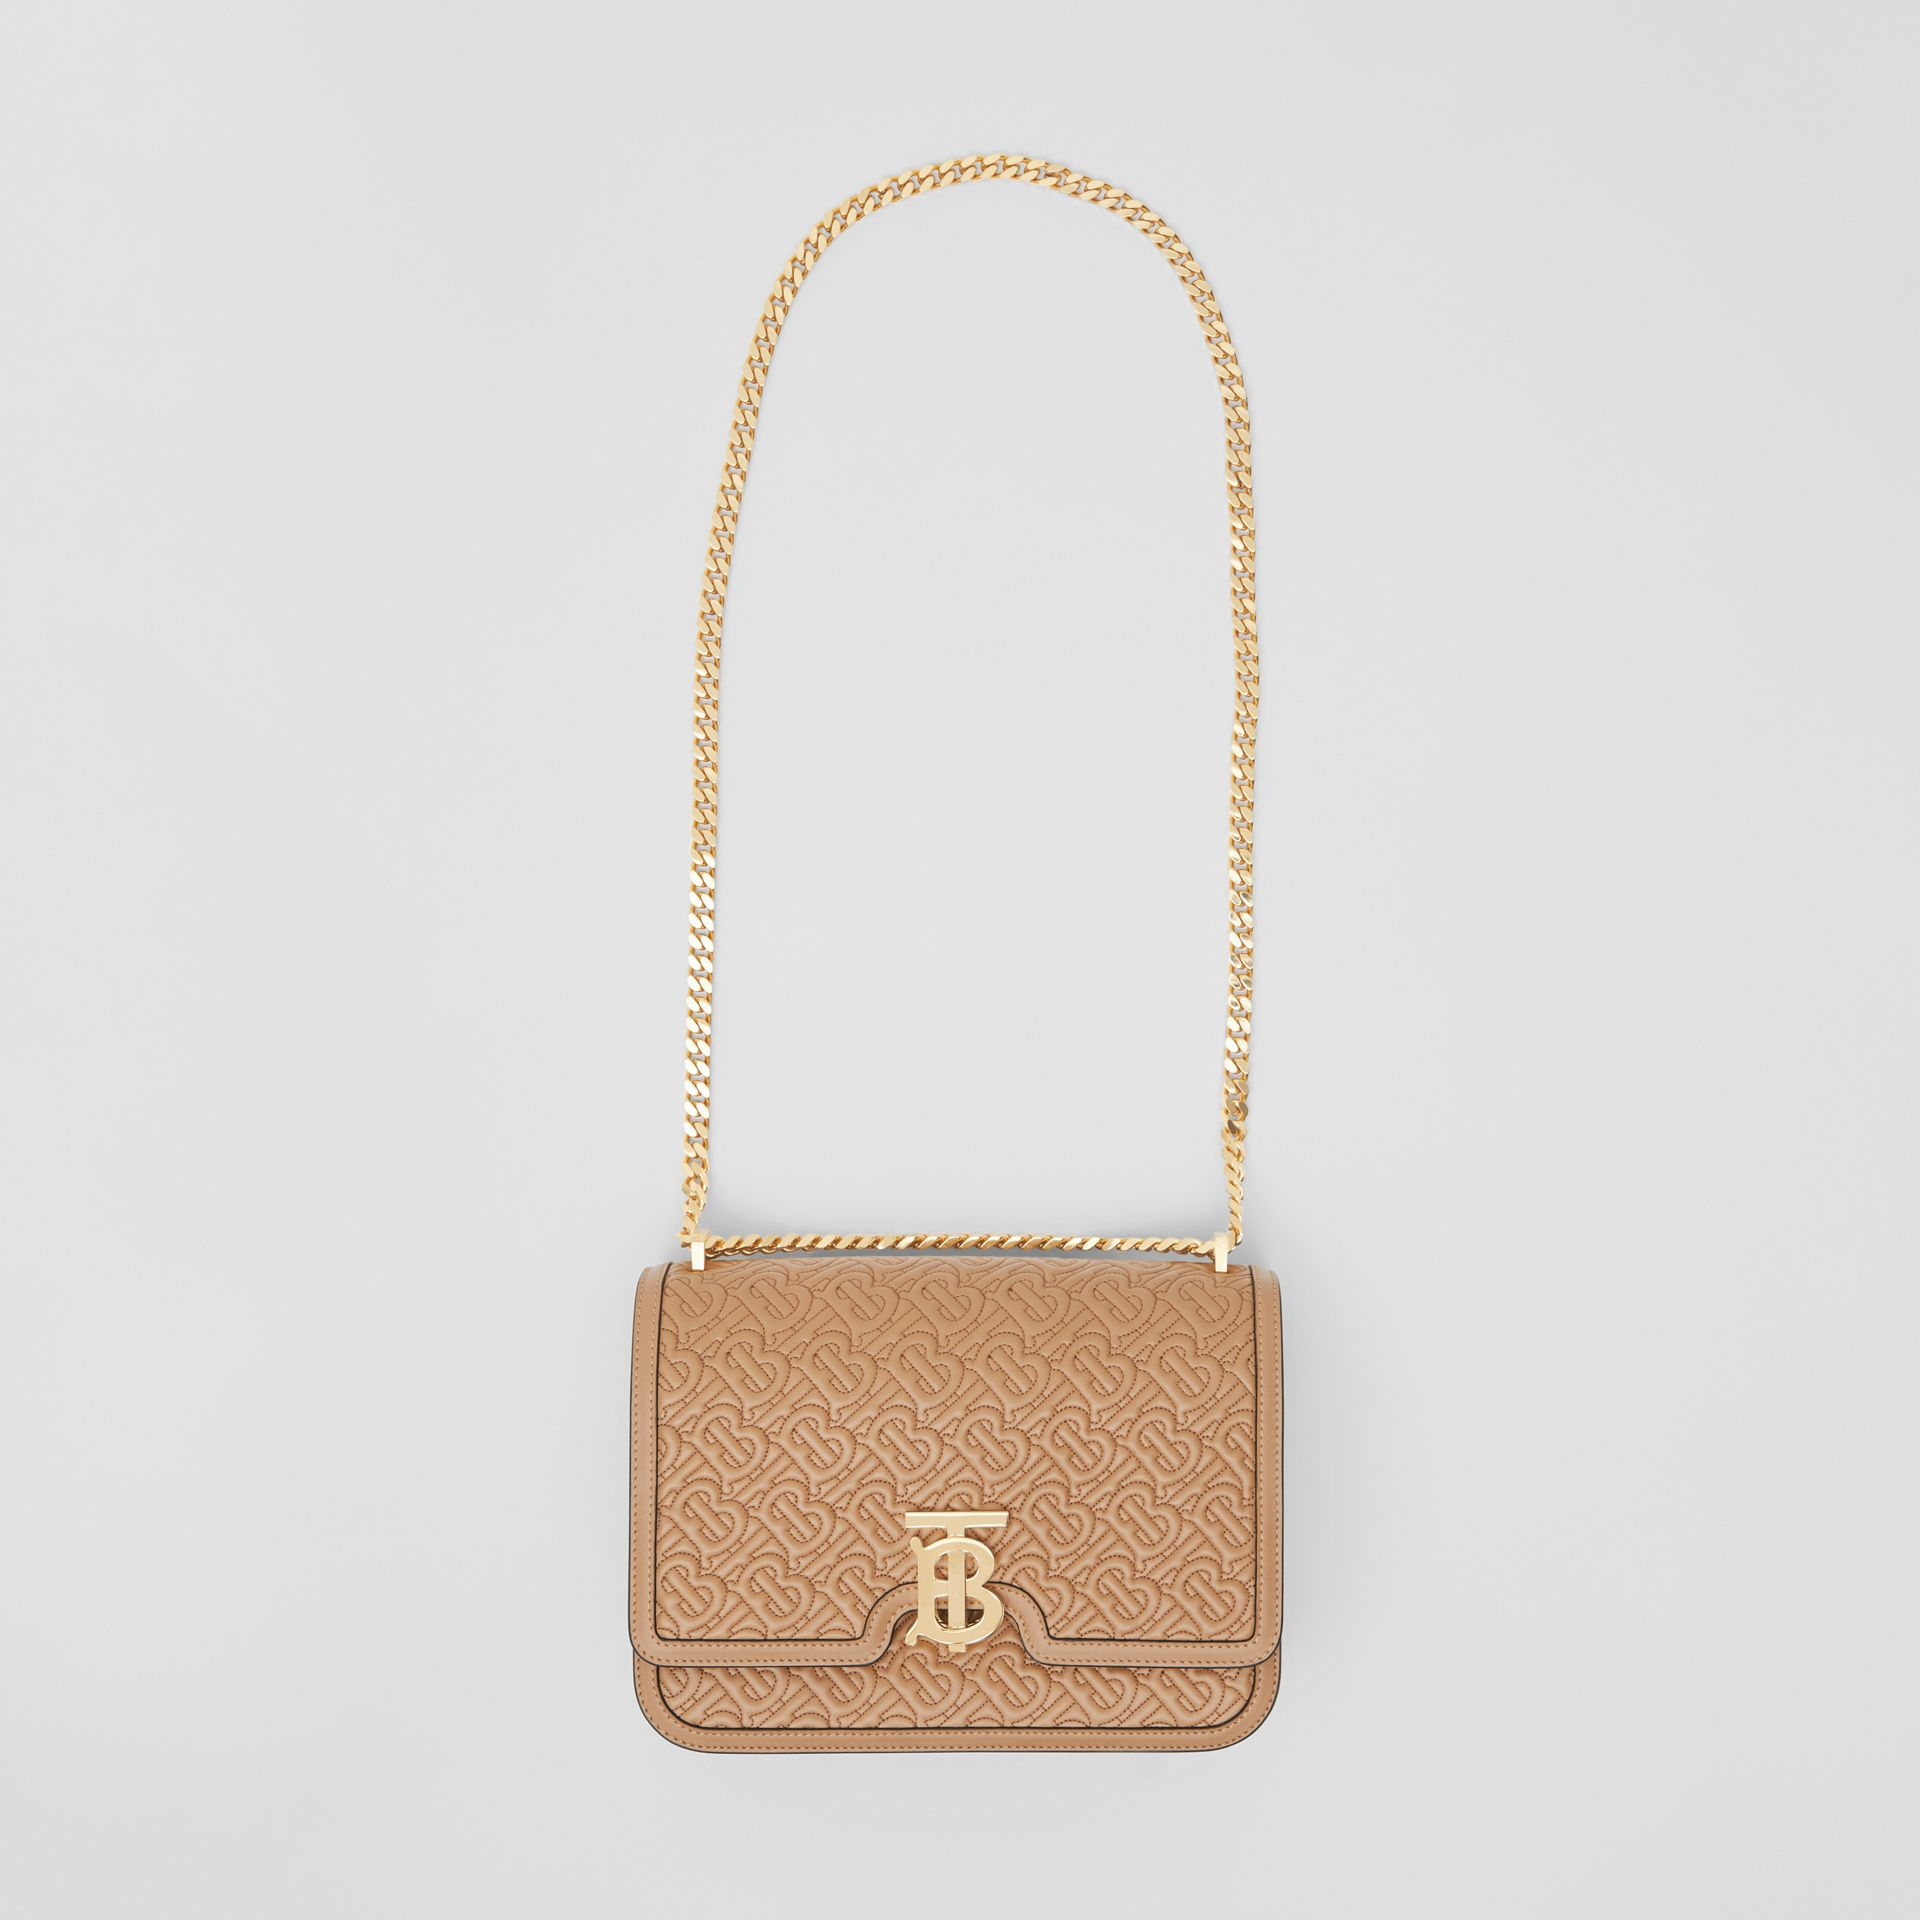 Medium Quilted Monogram Lambskin TB Bag in Honey - Women | Burberry United Kingdom - gallery image 3